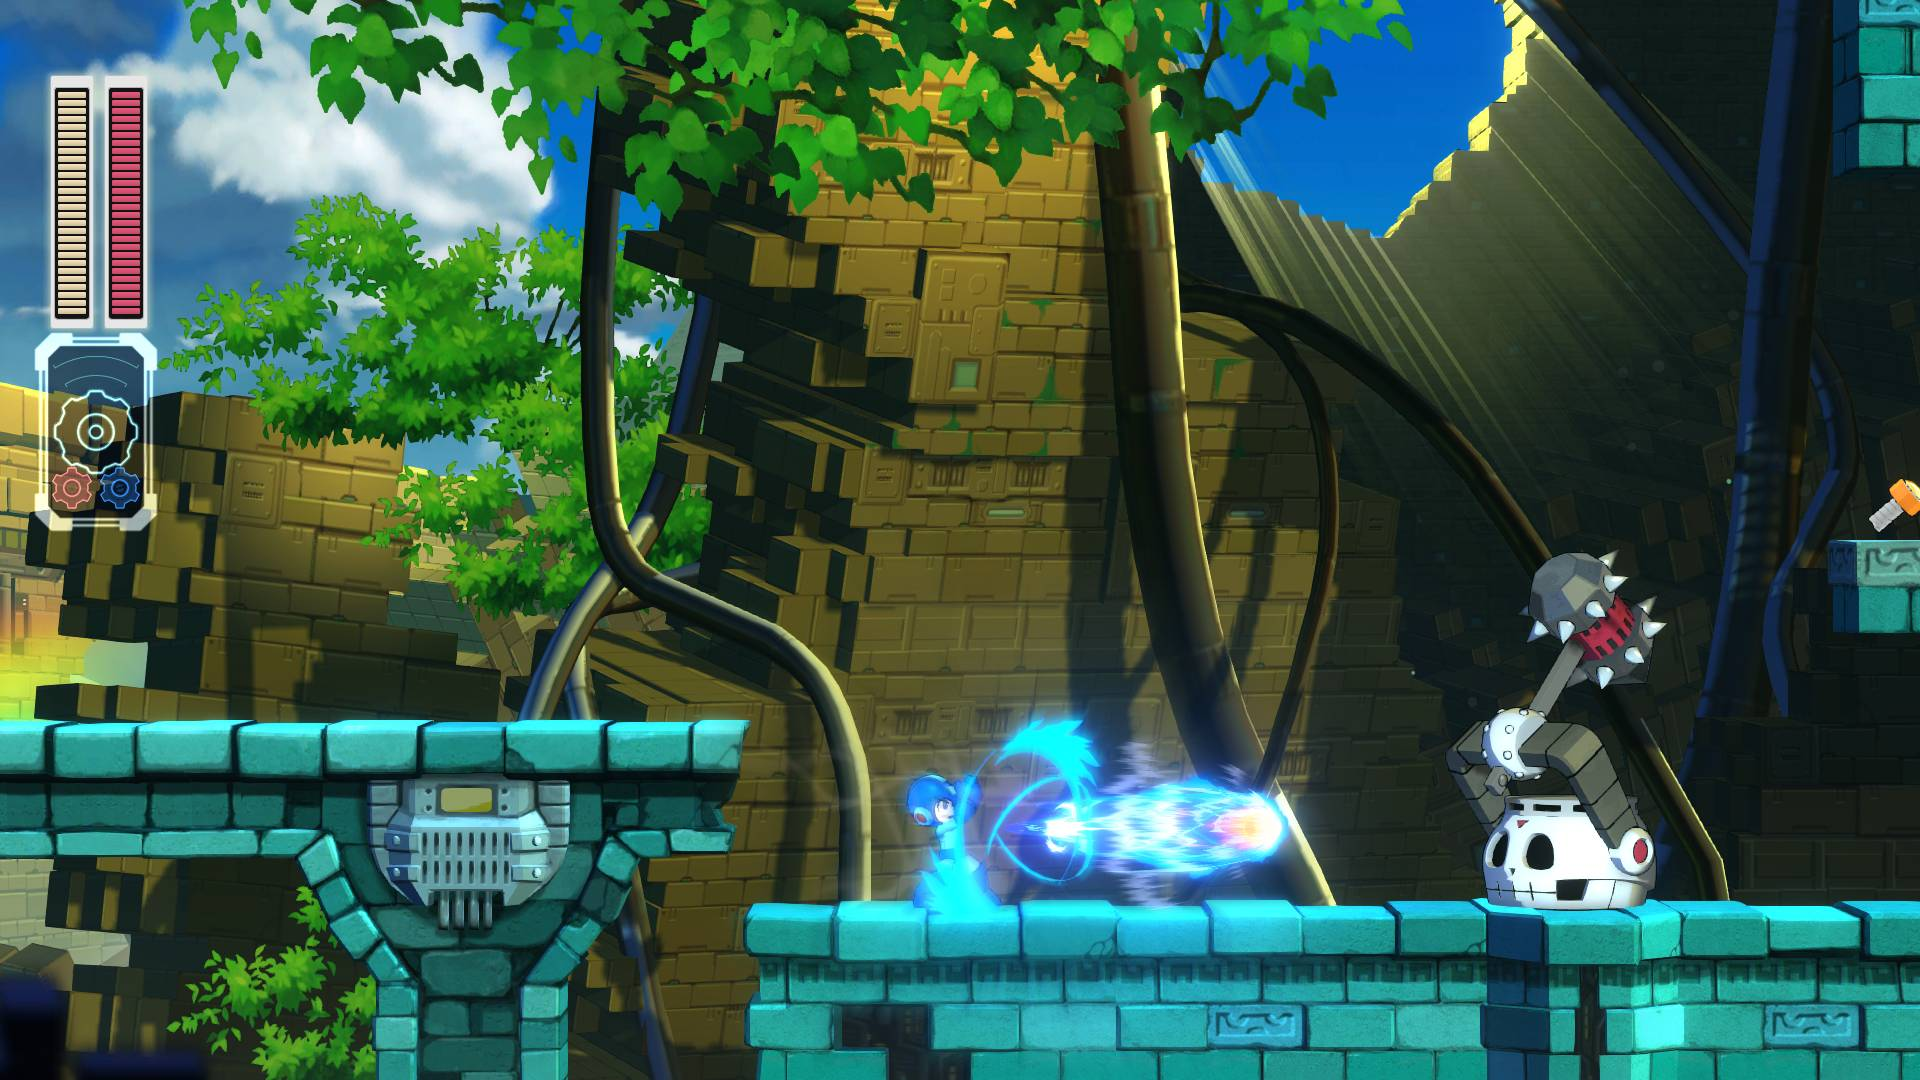 Mega Man 11 annunciato per PC, PS4, Xbox One e Switch